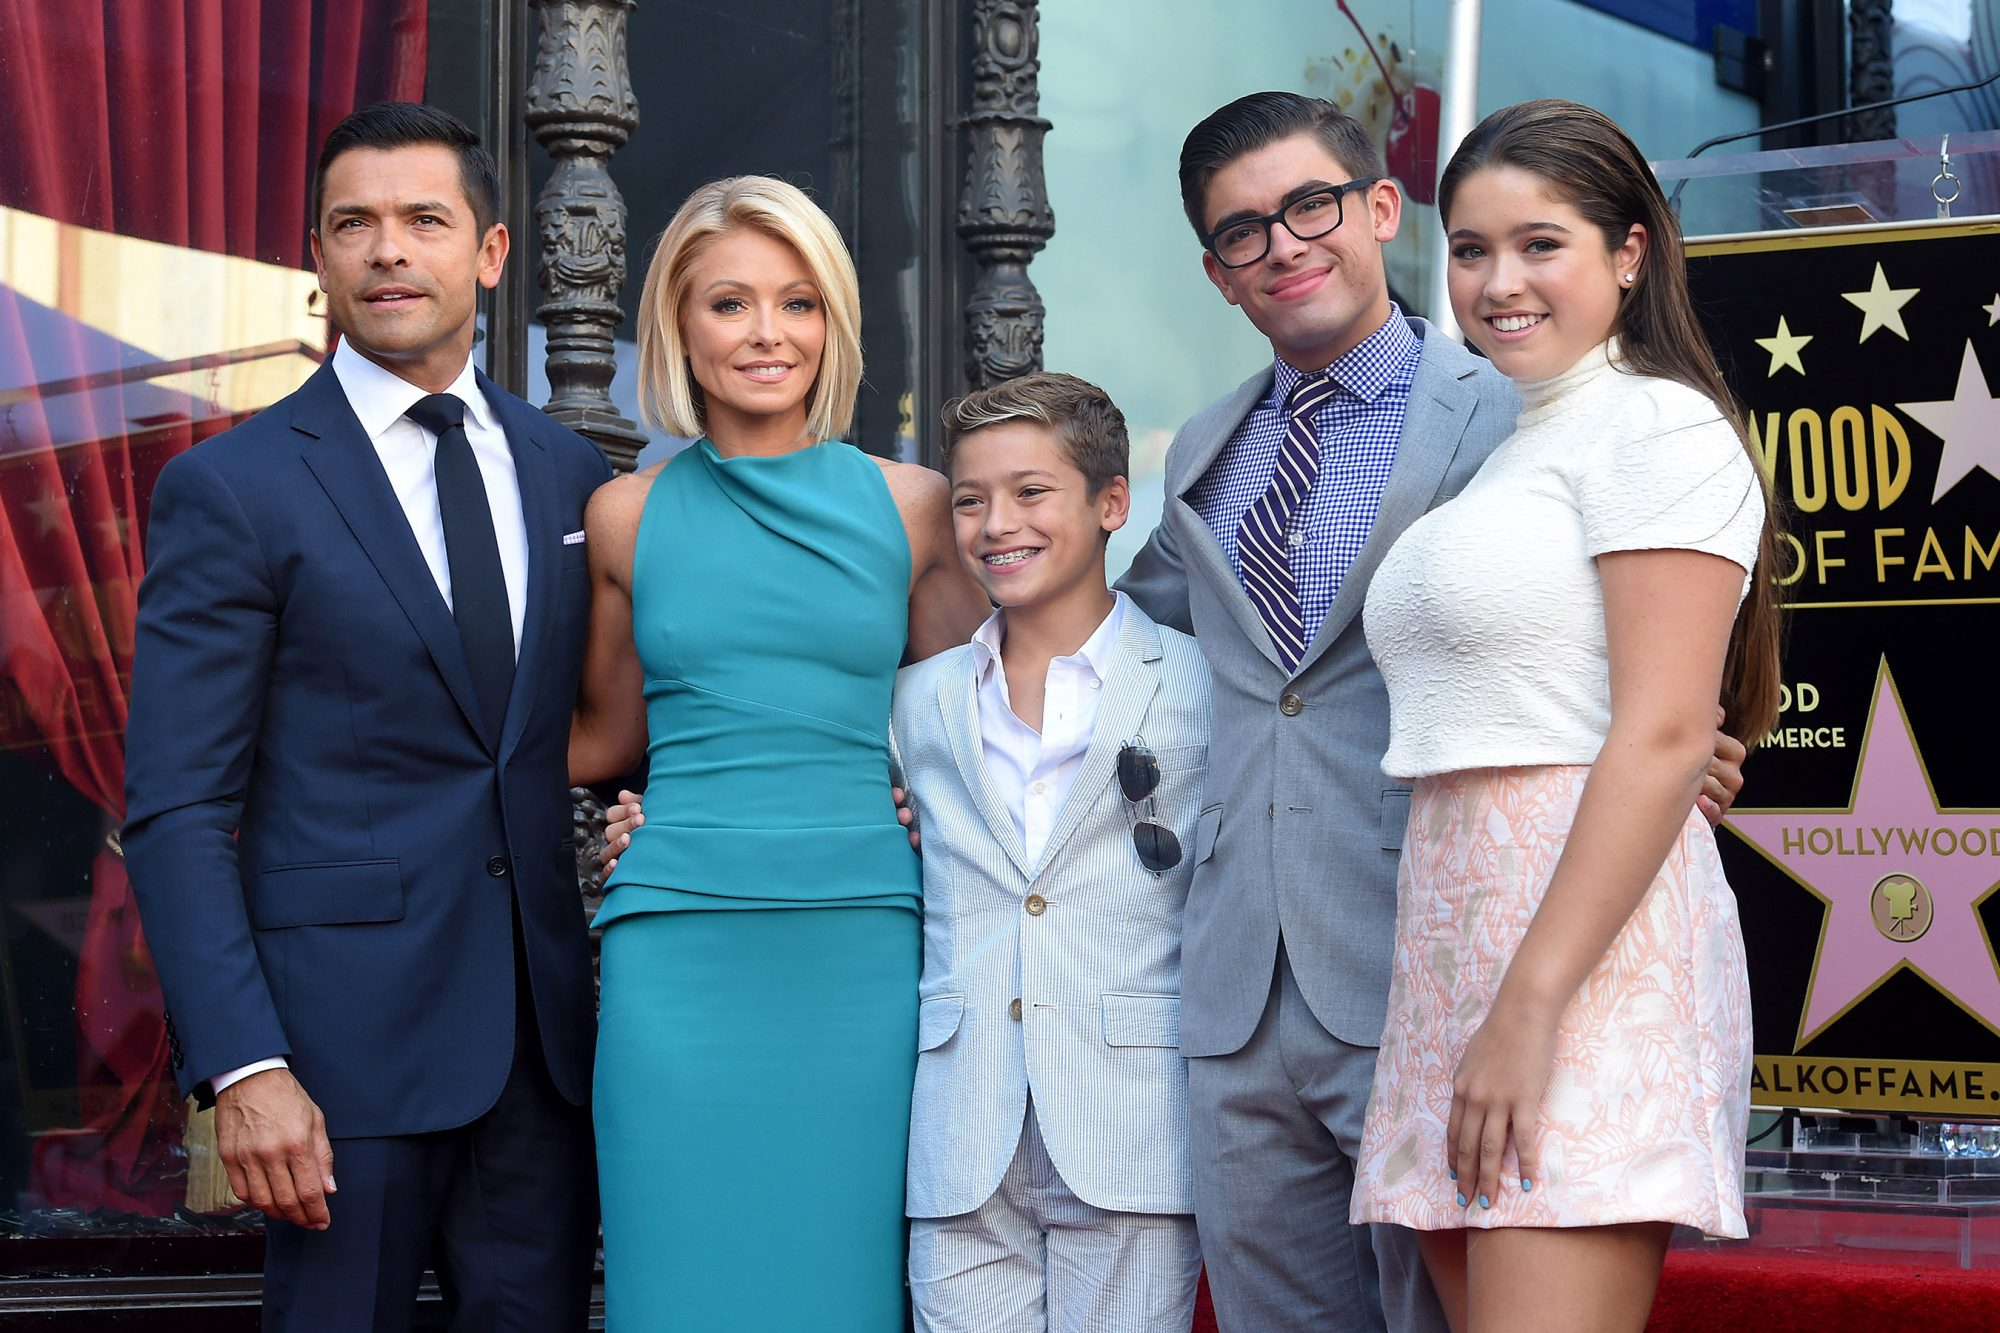 Kelly Ripa, husband Mark Consuelos, daughter Lola Consuelos, sons Michael Consuelos and Joaquin Consuelos